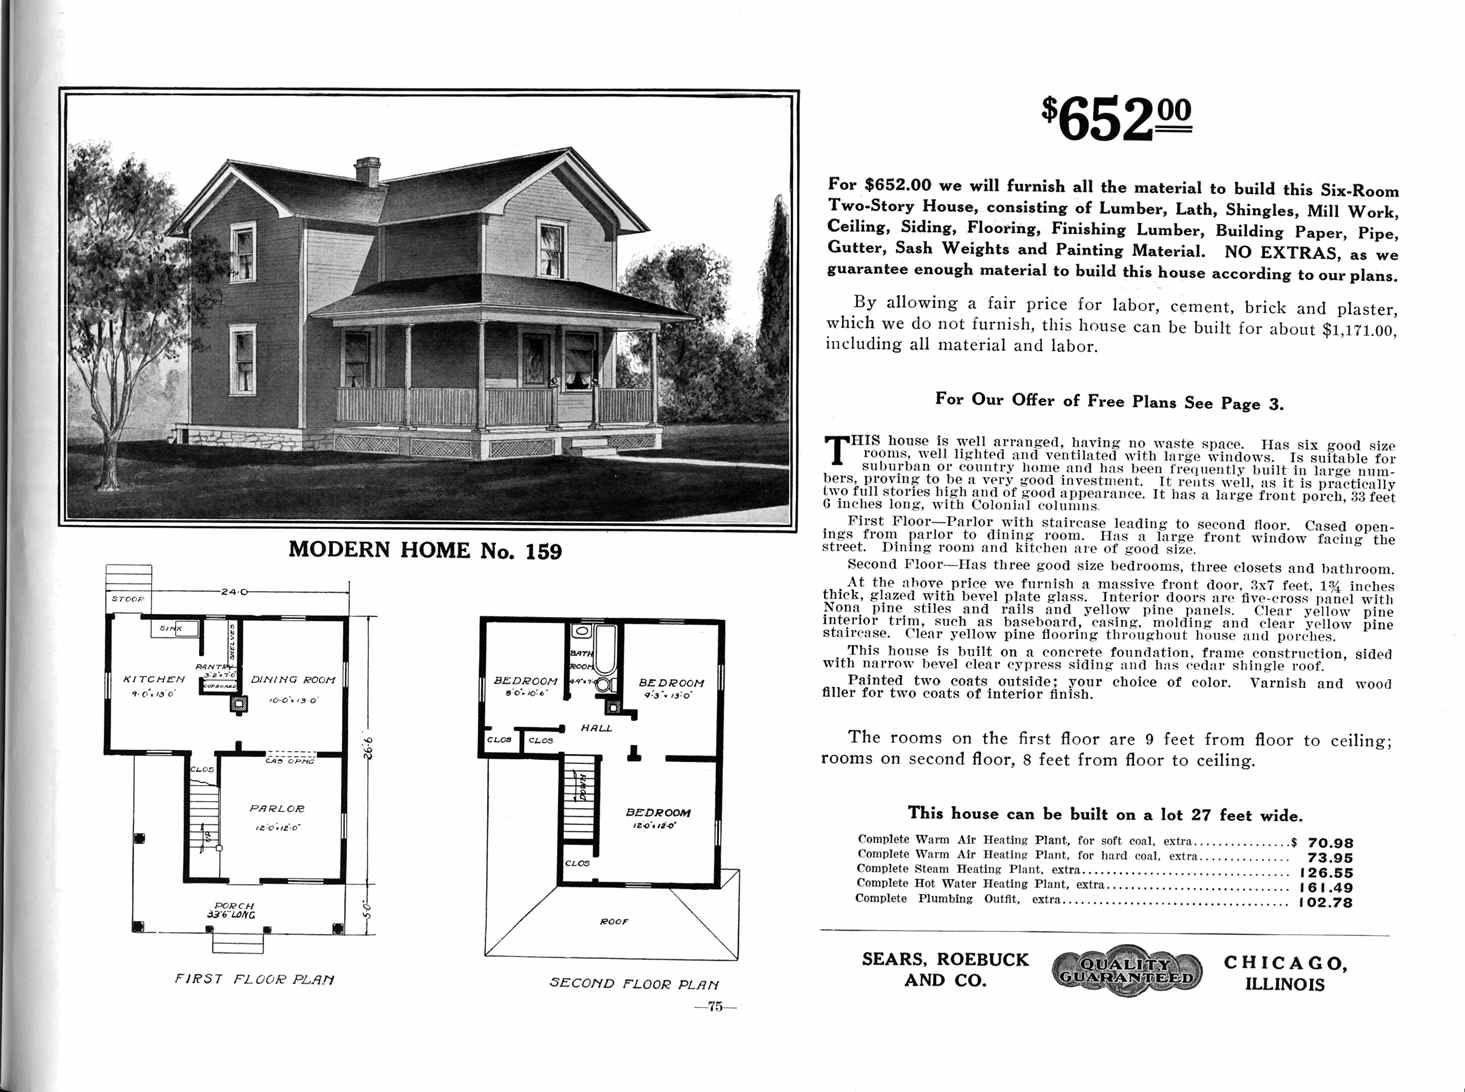 Sears Modern Home From The 1912 Catalog. Note That There Is Only One  Bathroom, Split Between Two Bedrooms.